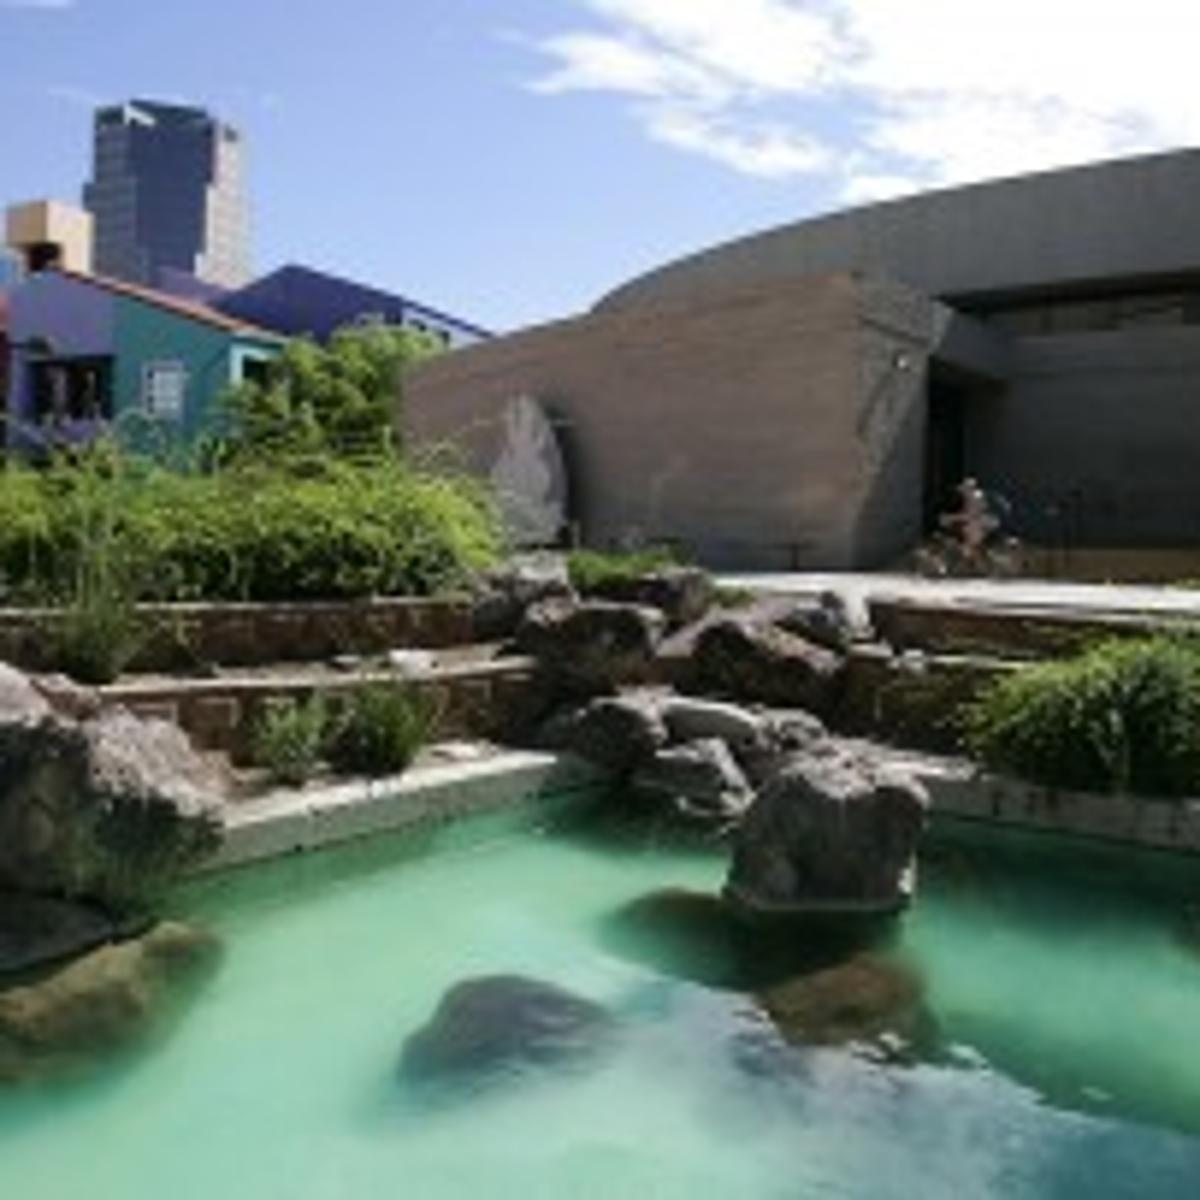 Neighbors History Bubbles Up In Debate Over Fountains Local